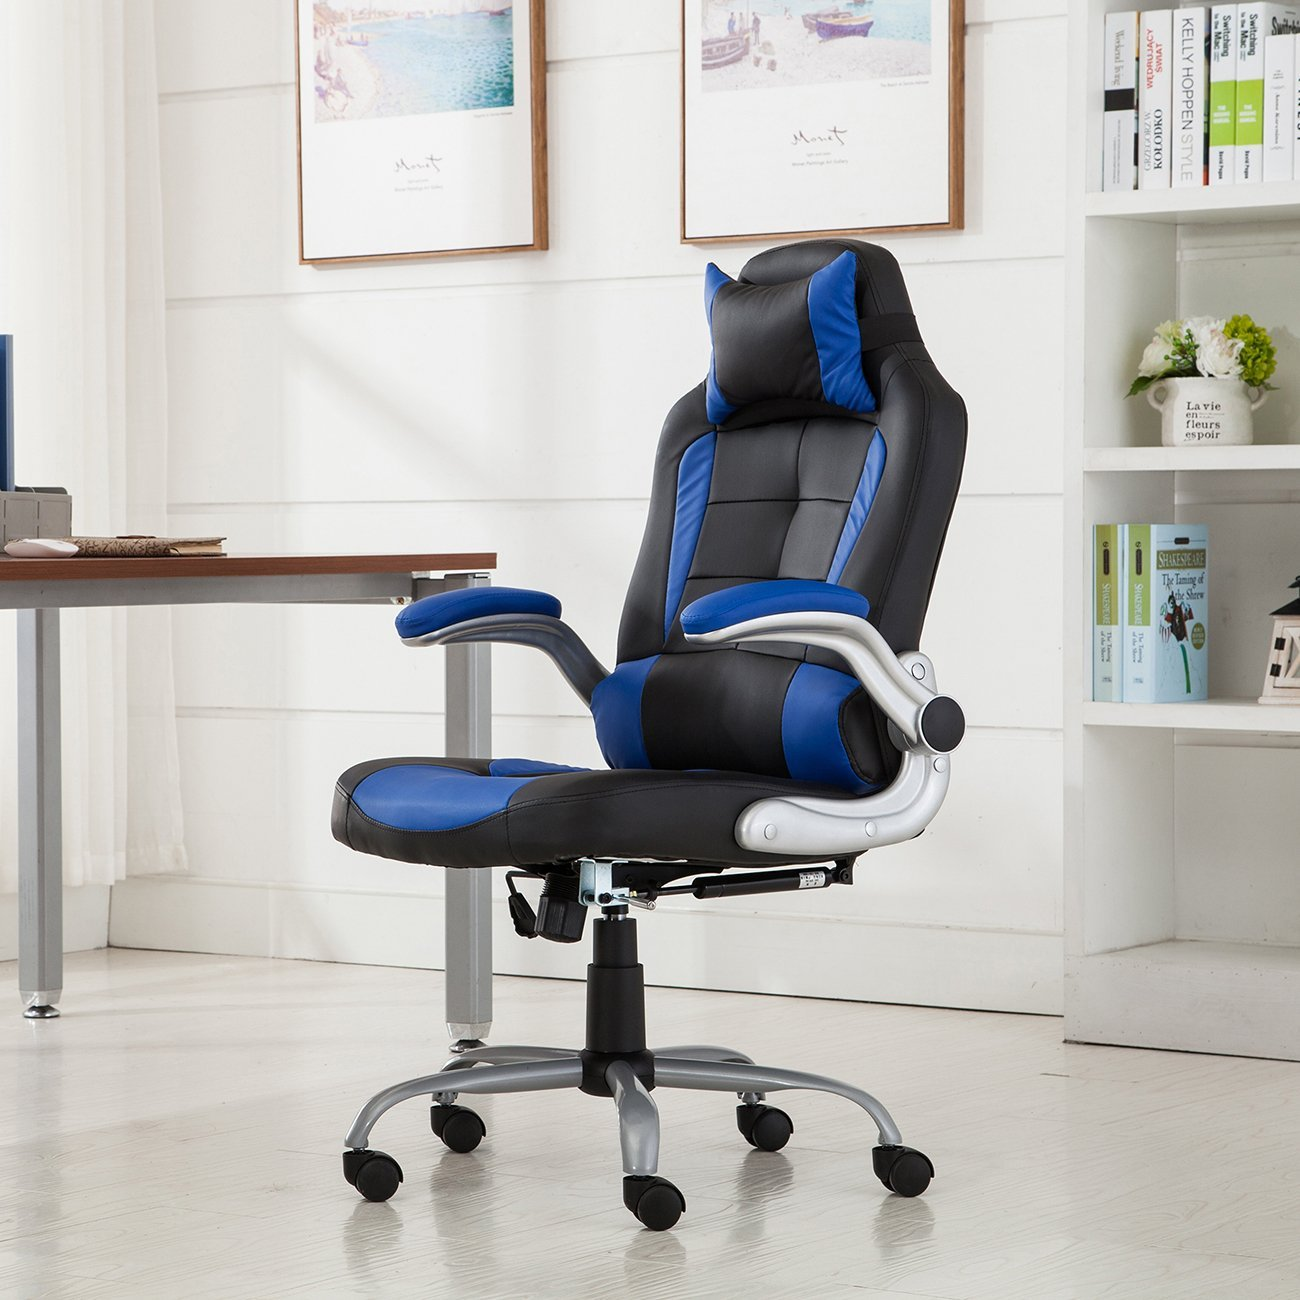 Gamer Chairs The Best Gaming Chairs Are You Ready For Comfortable